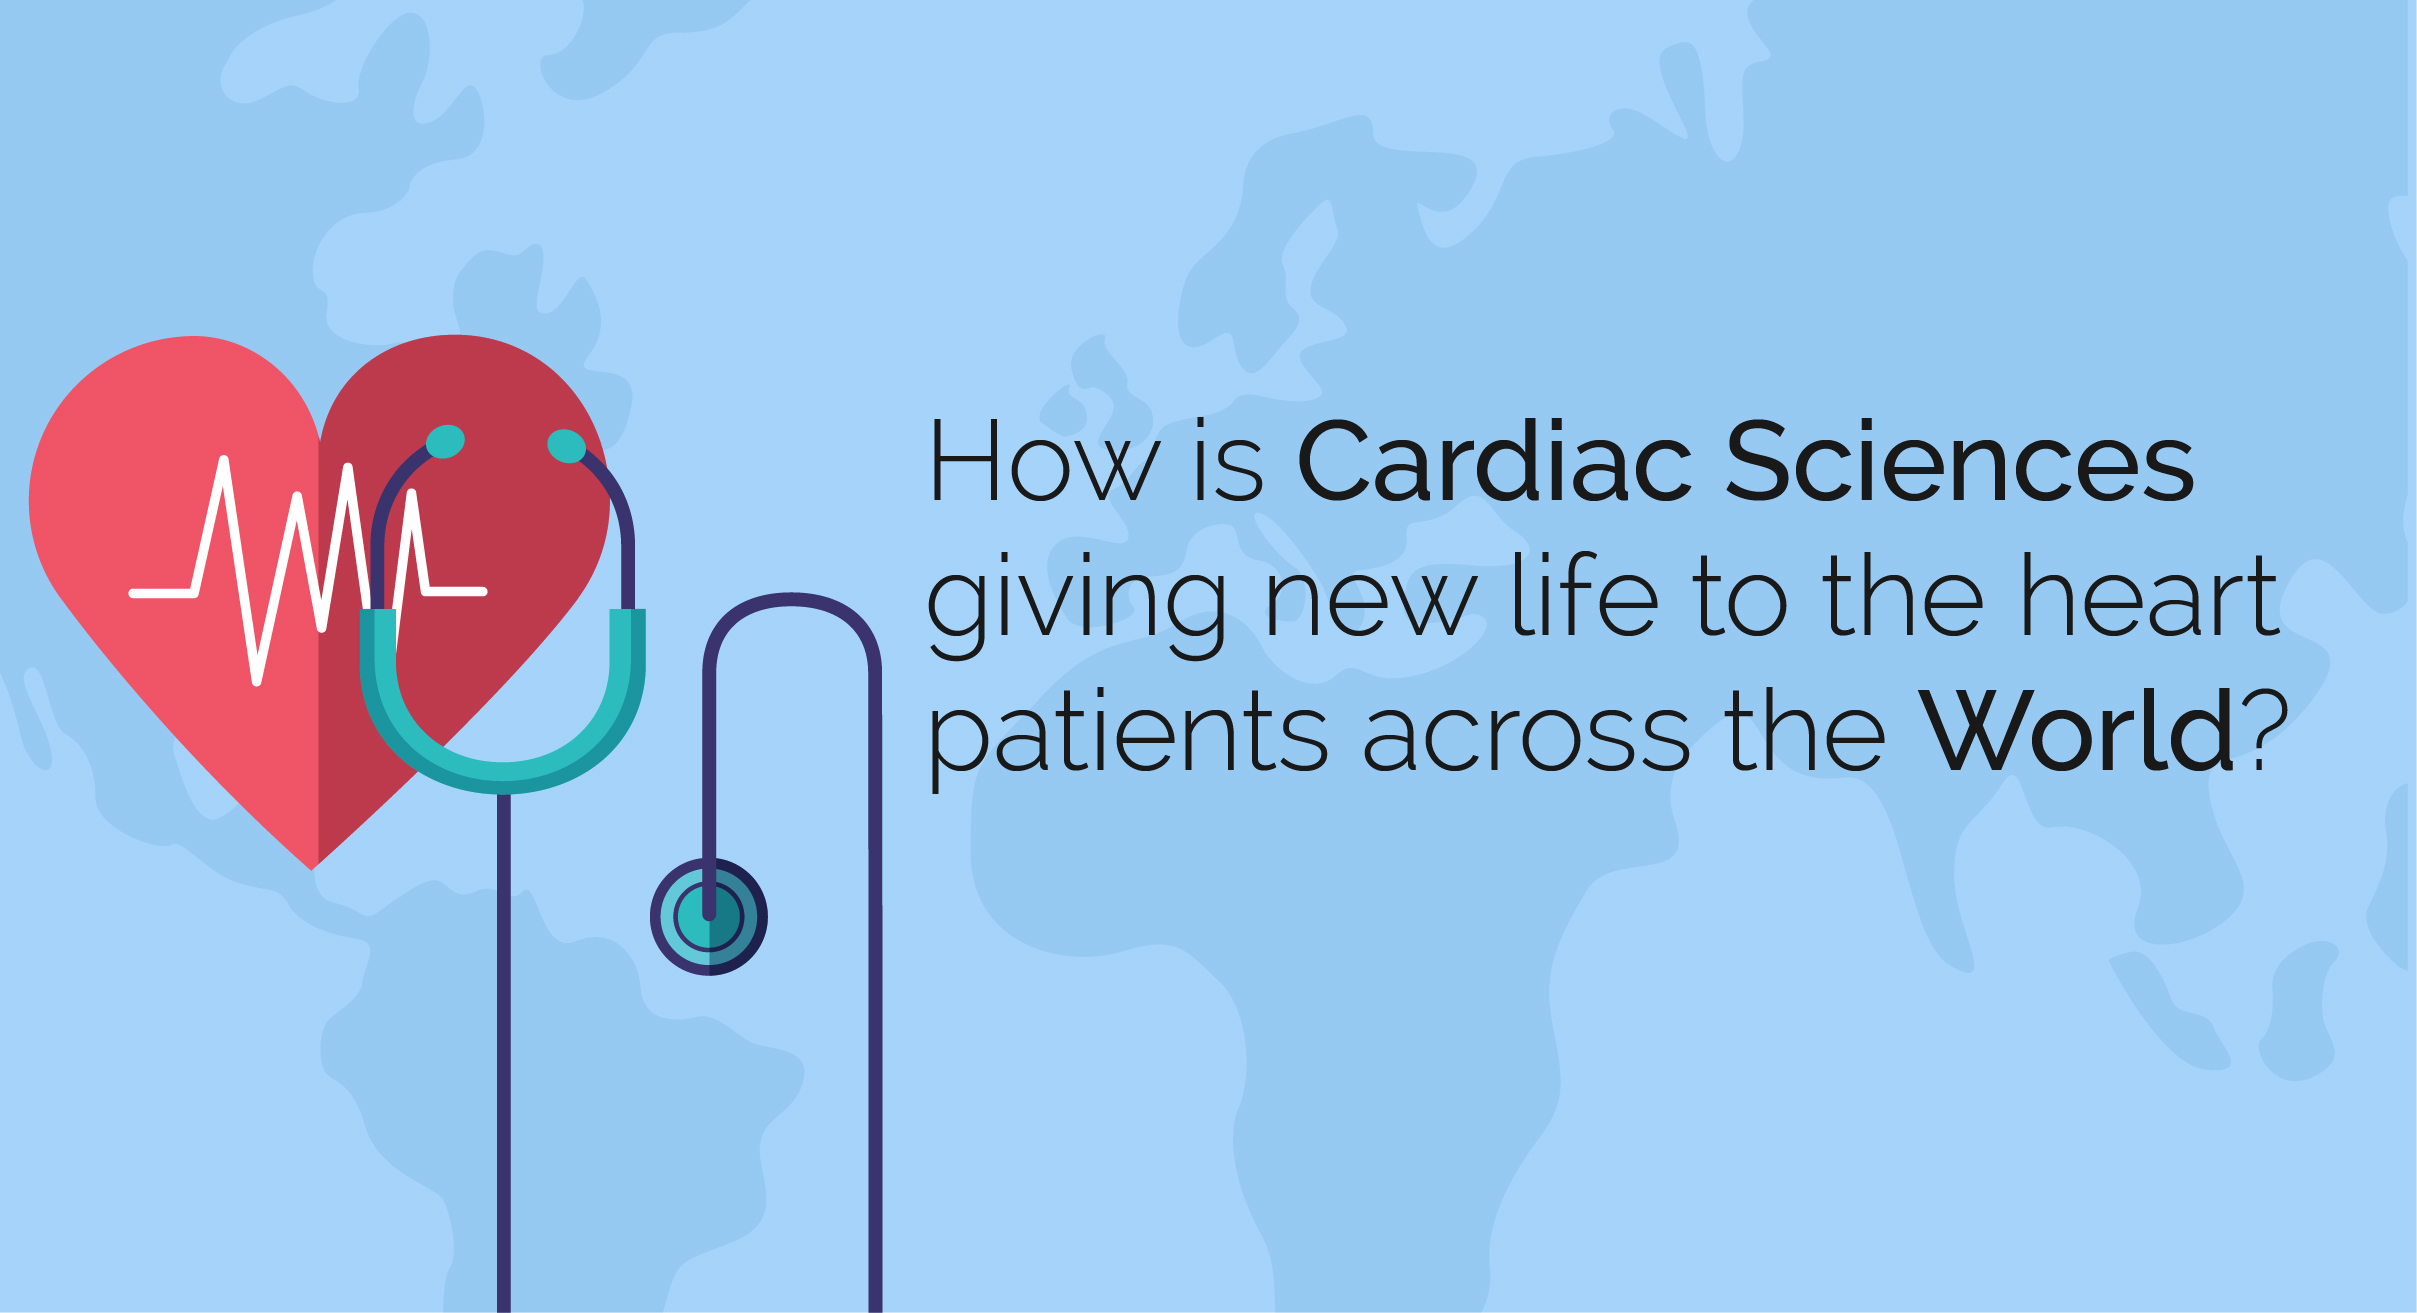 How is cardiac sciences giving new life to the heart patients across the world?